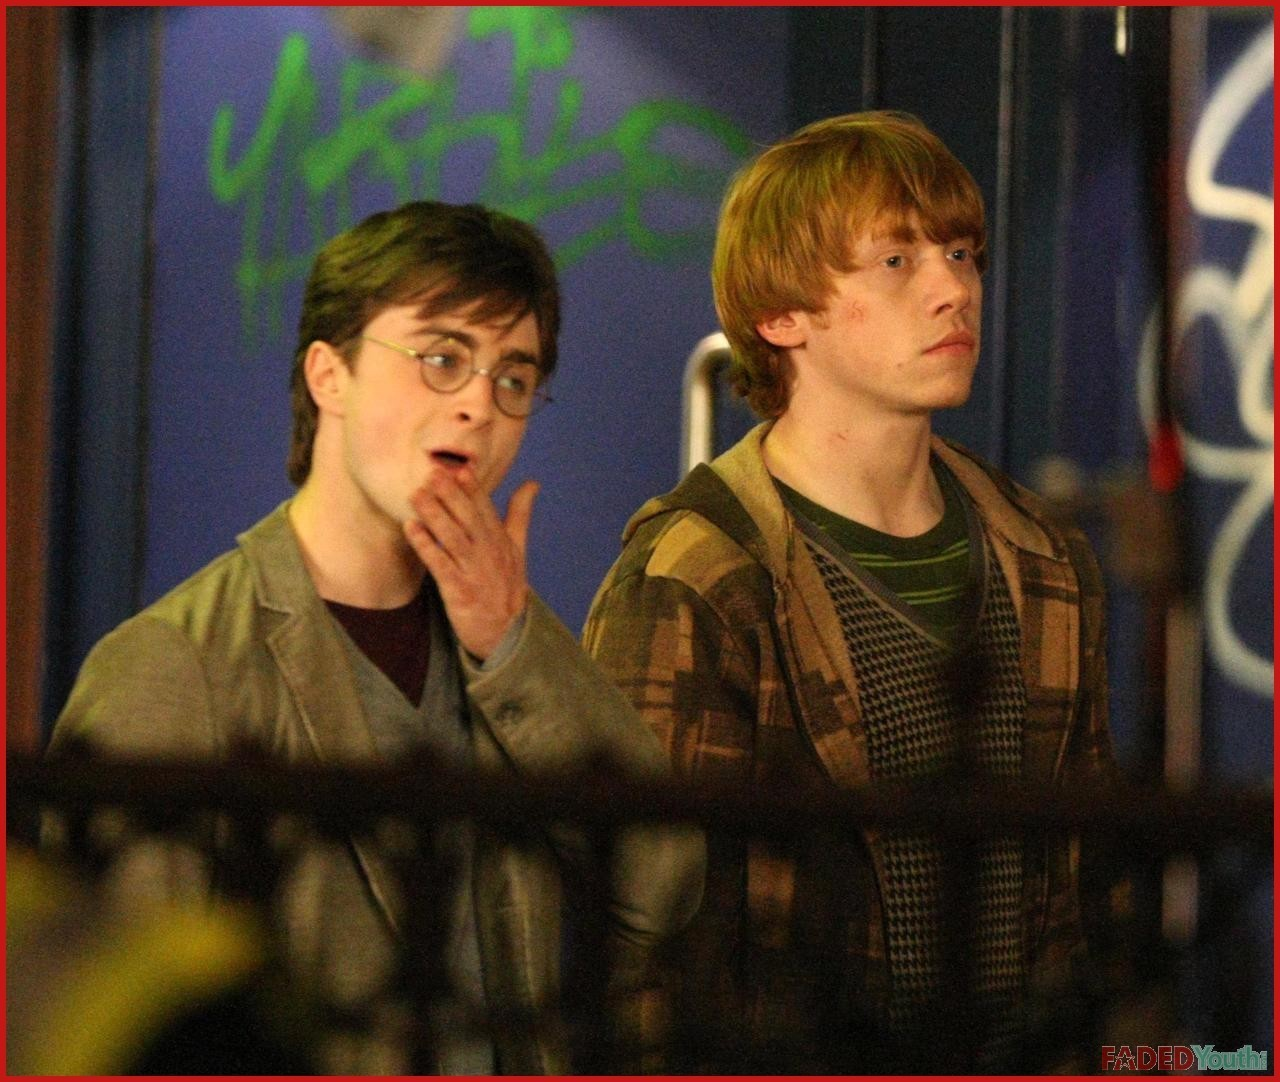 http://2.bp.blogspot.com/_hppJUyZhTnk/SwrO1Z_YkaI/AAAAAAAAAzQ/MZHIZDDy-Gc/s1600/Deathly-Hallows-movie-filming-in-London-harry-potter-5733023-1280-1082.jpg